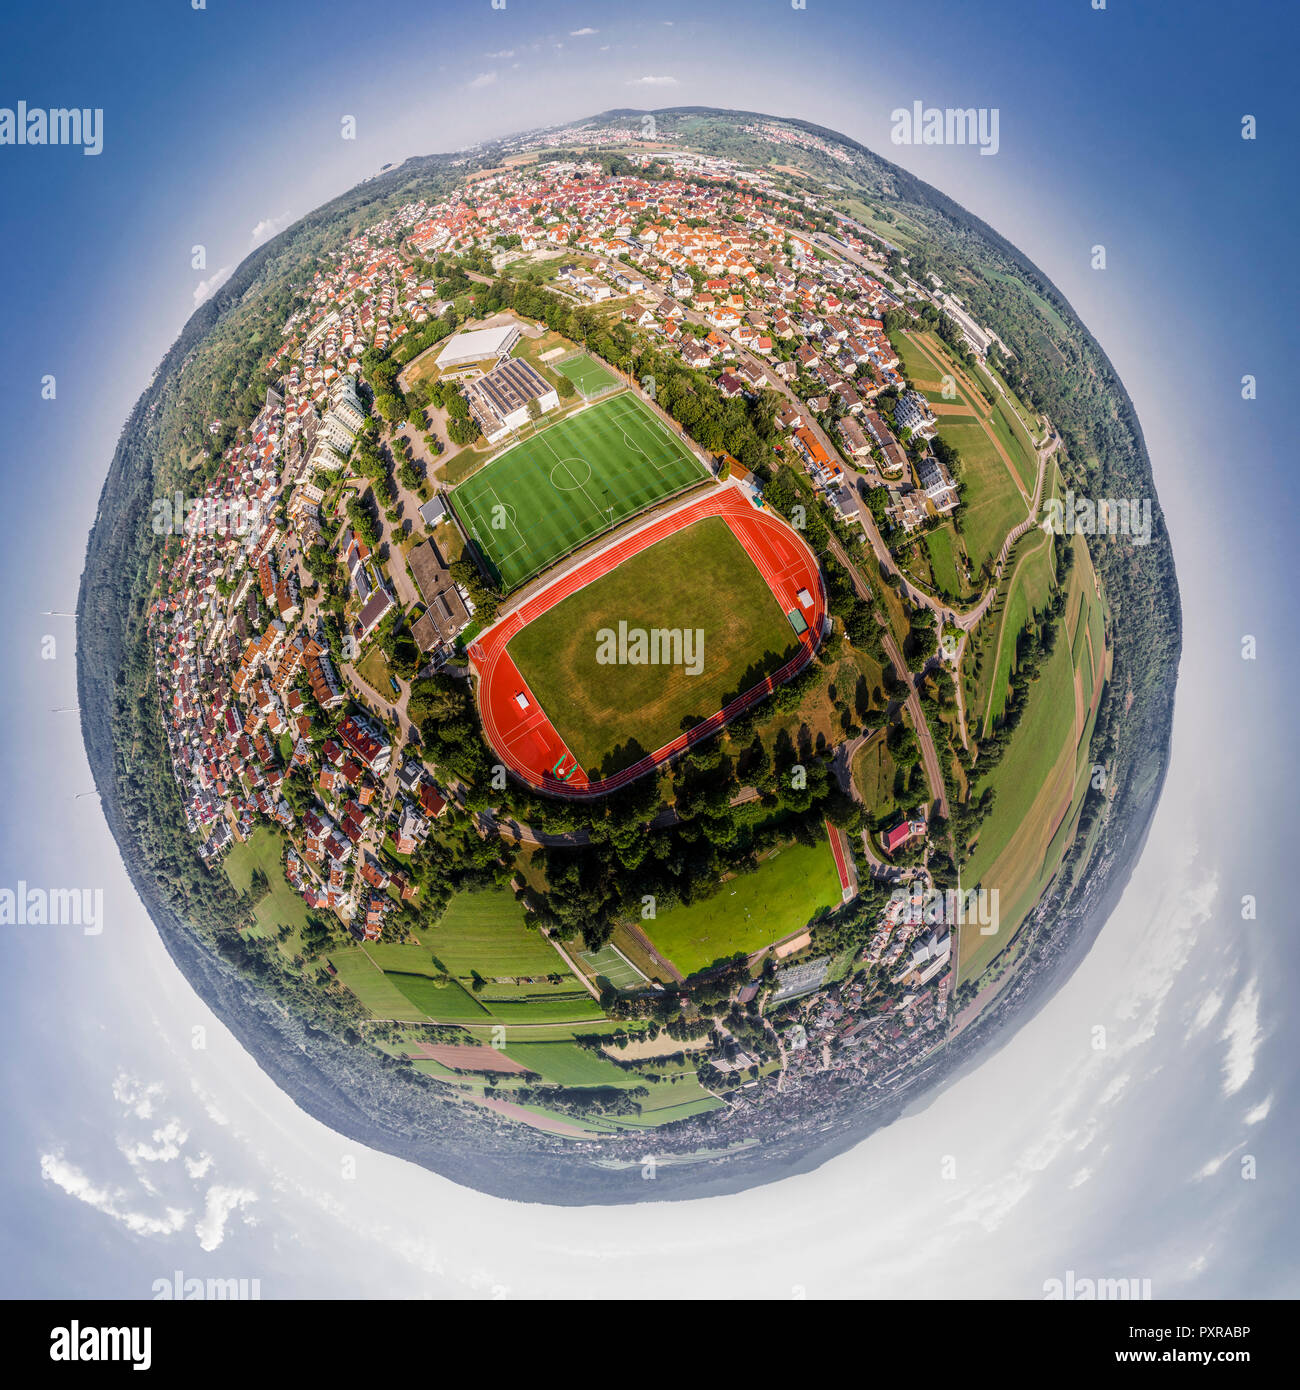 Germany, Baden-Wuerttemberg, Winterbach, Little planet view of track and field stadium - Stock Image